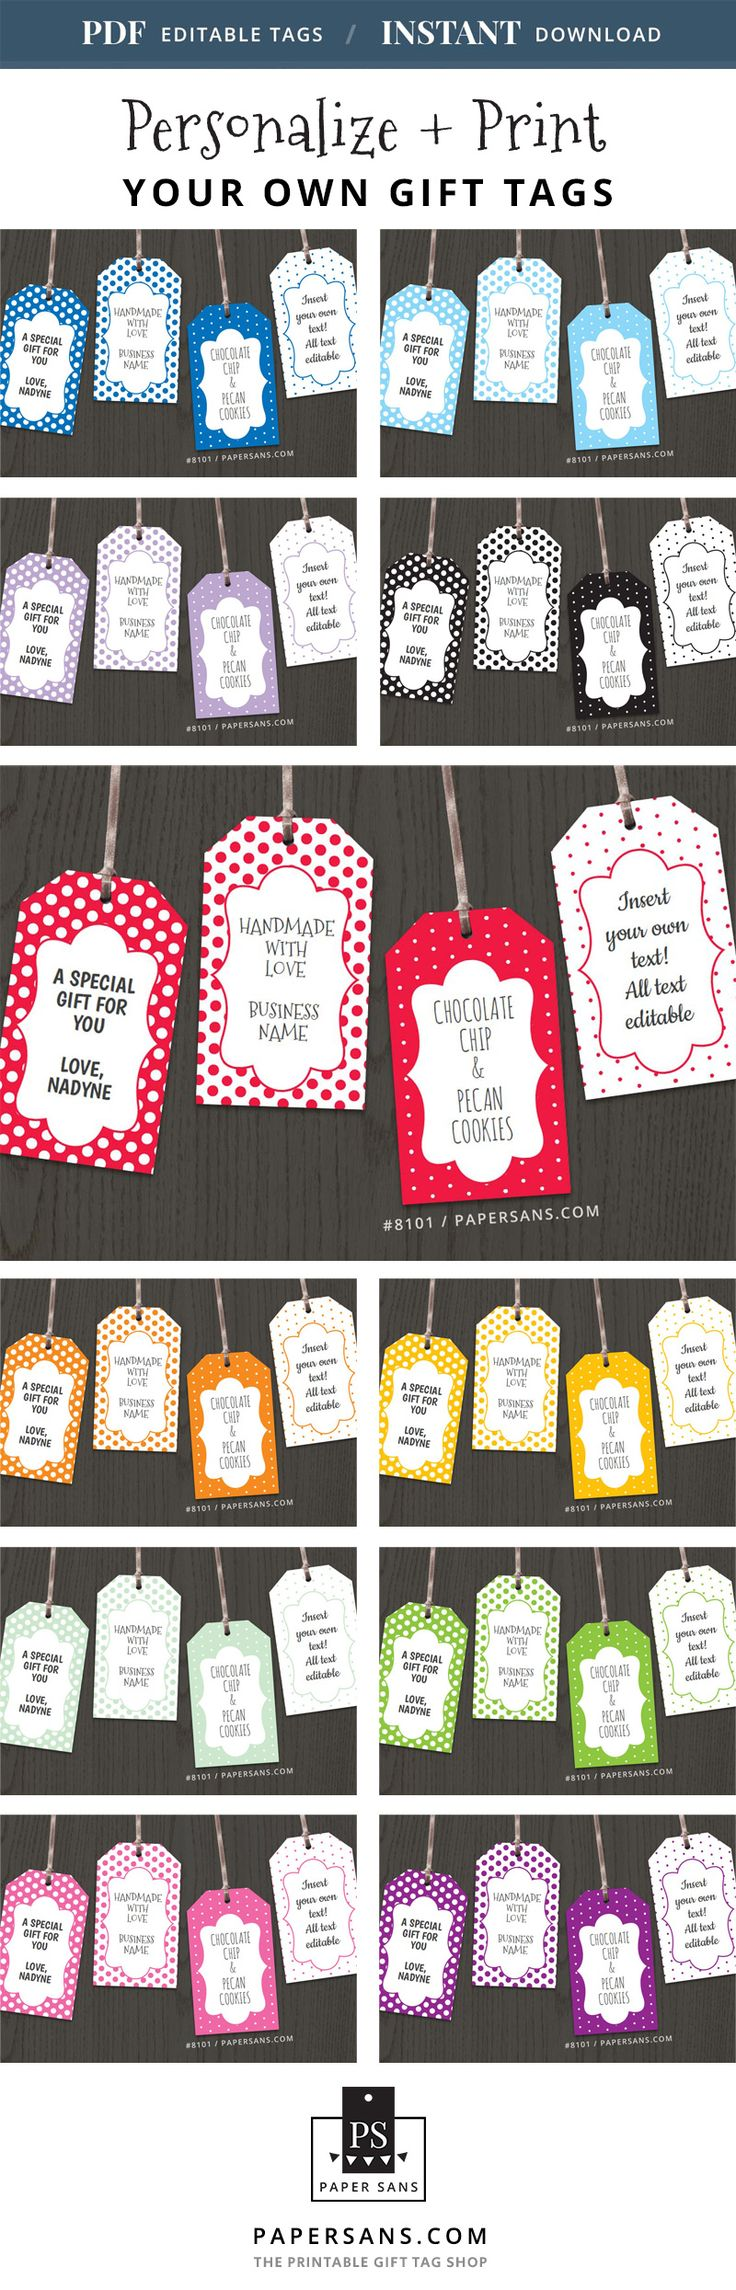 Editable gift tags you can personalize and print at home